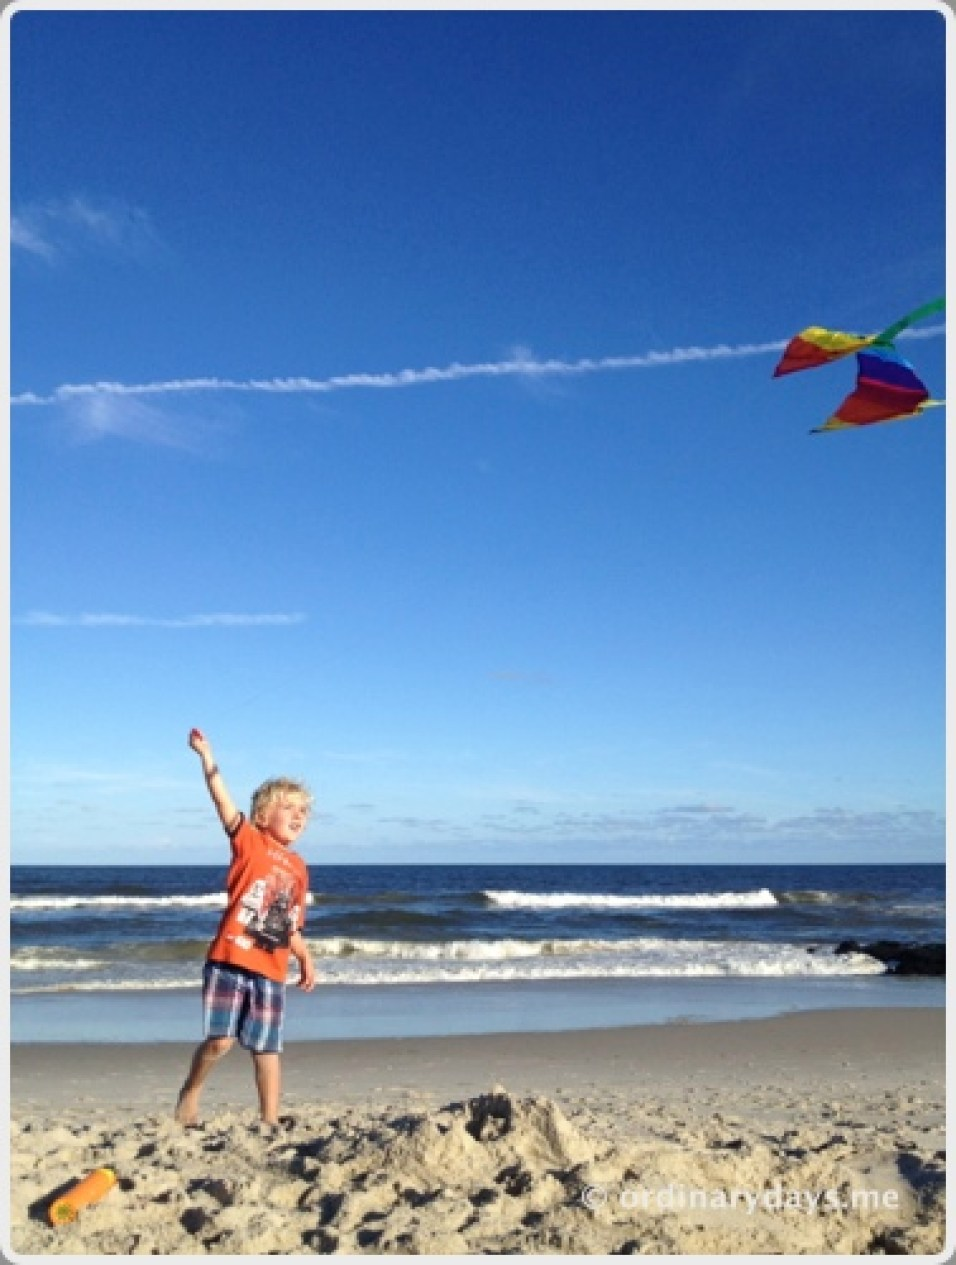 Kites on Long Beach Island